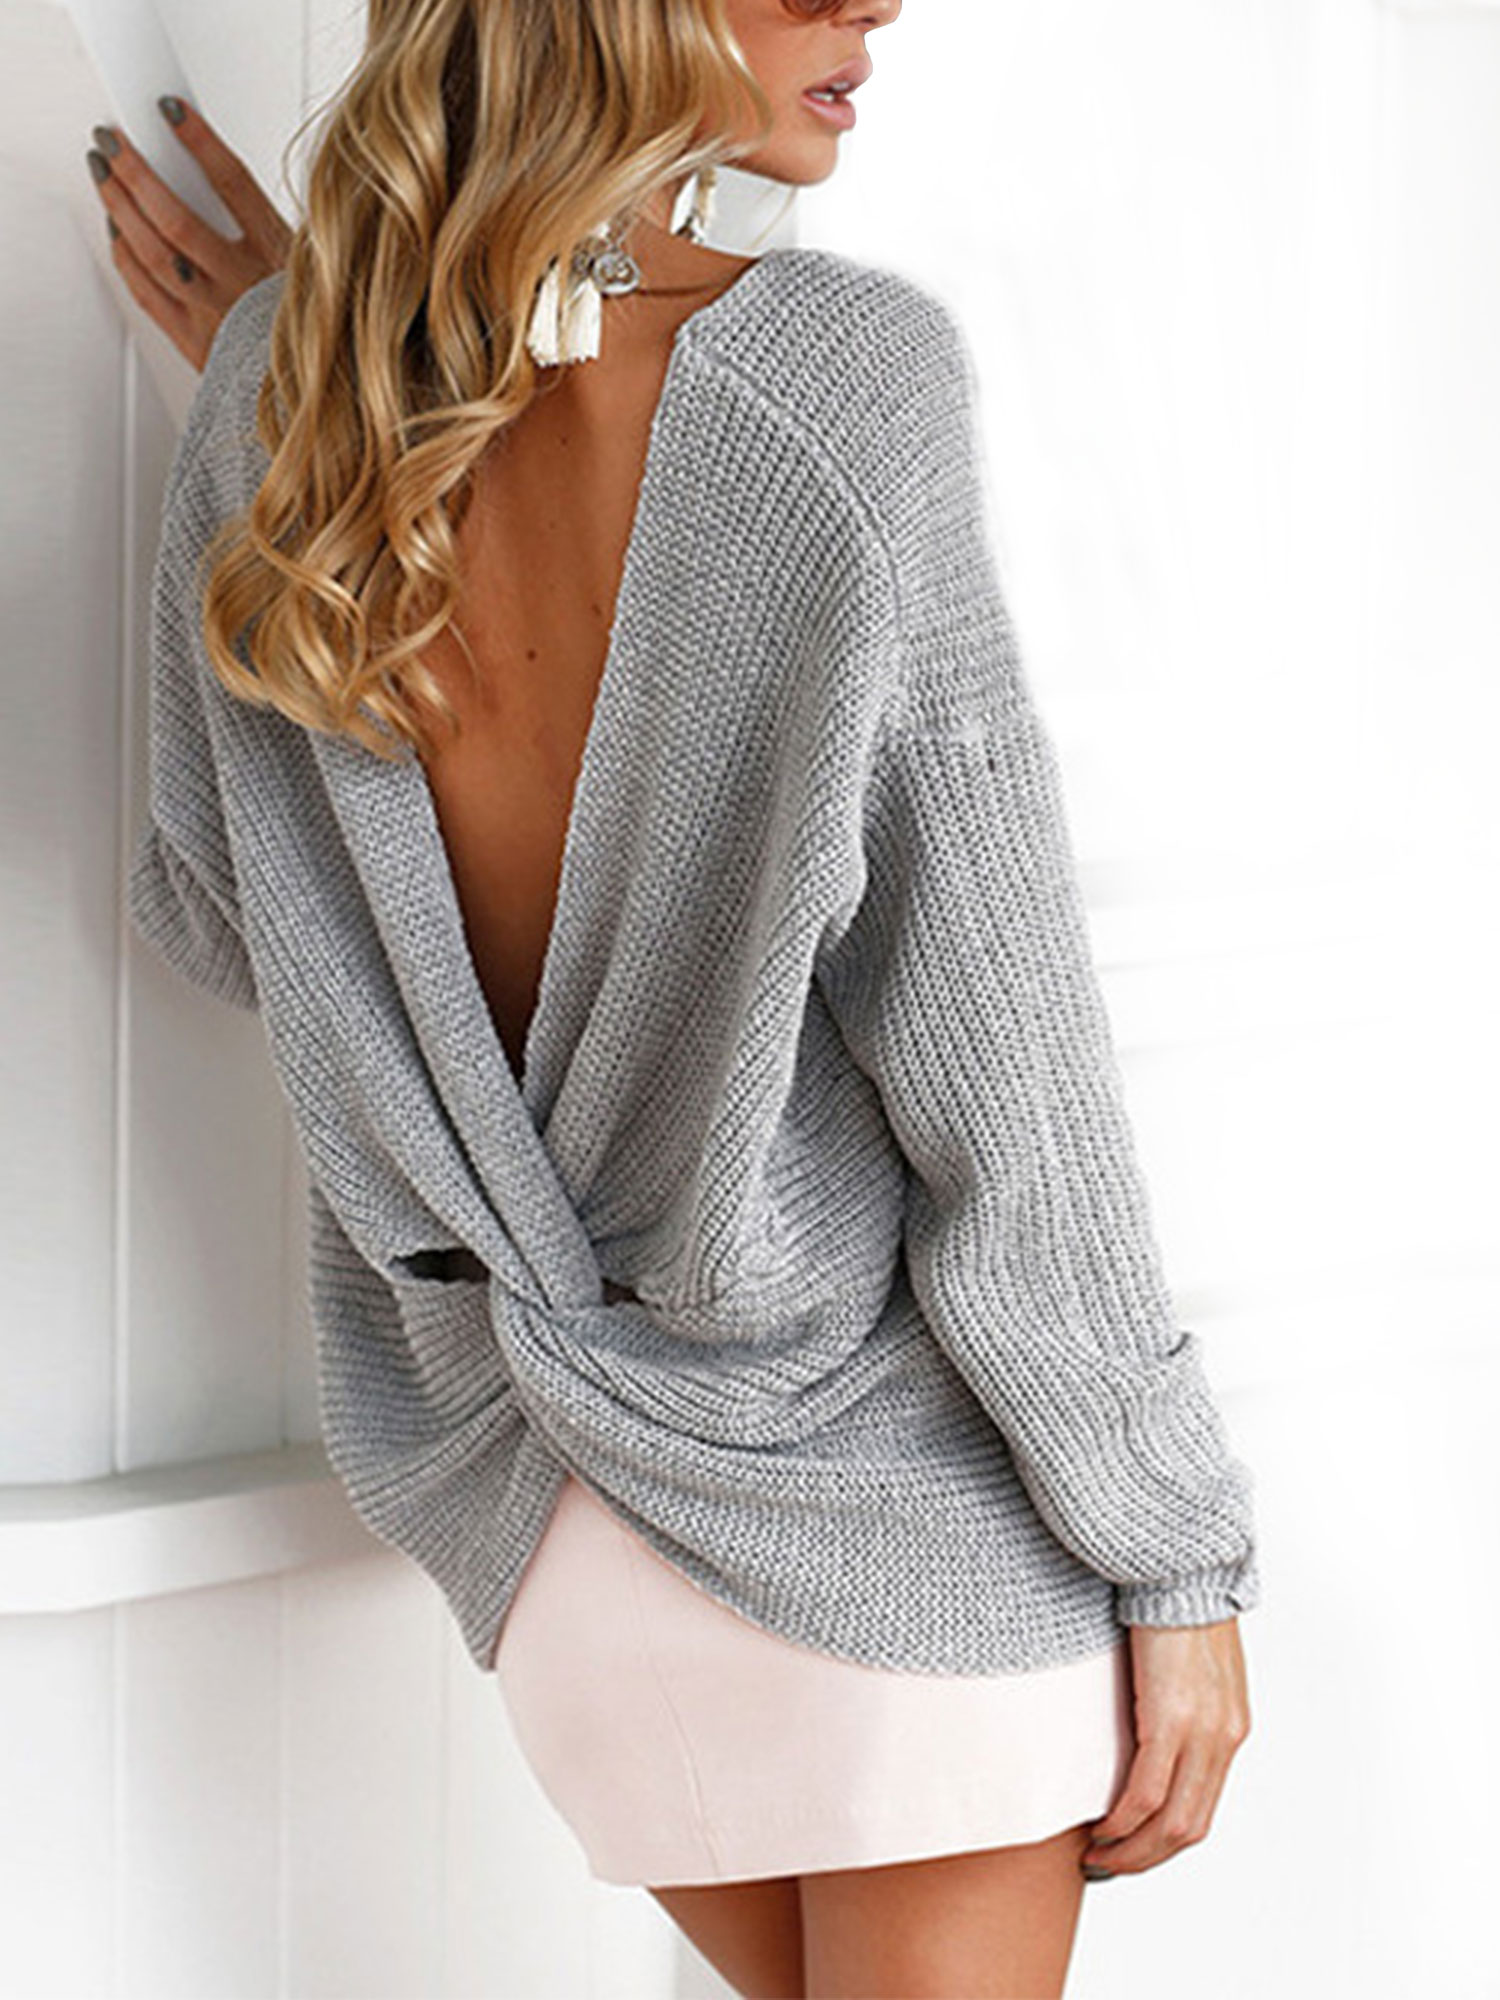 Womens V Neck Knitted Knot Twist Sweater Casual Loose Jumper Tops Knit Blouse US Women's Sweaters